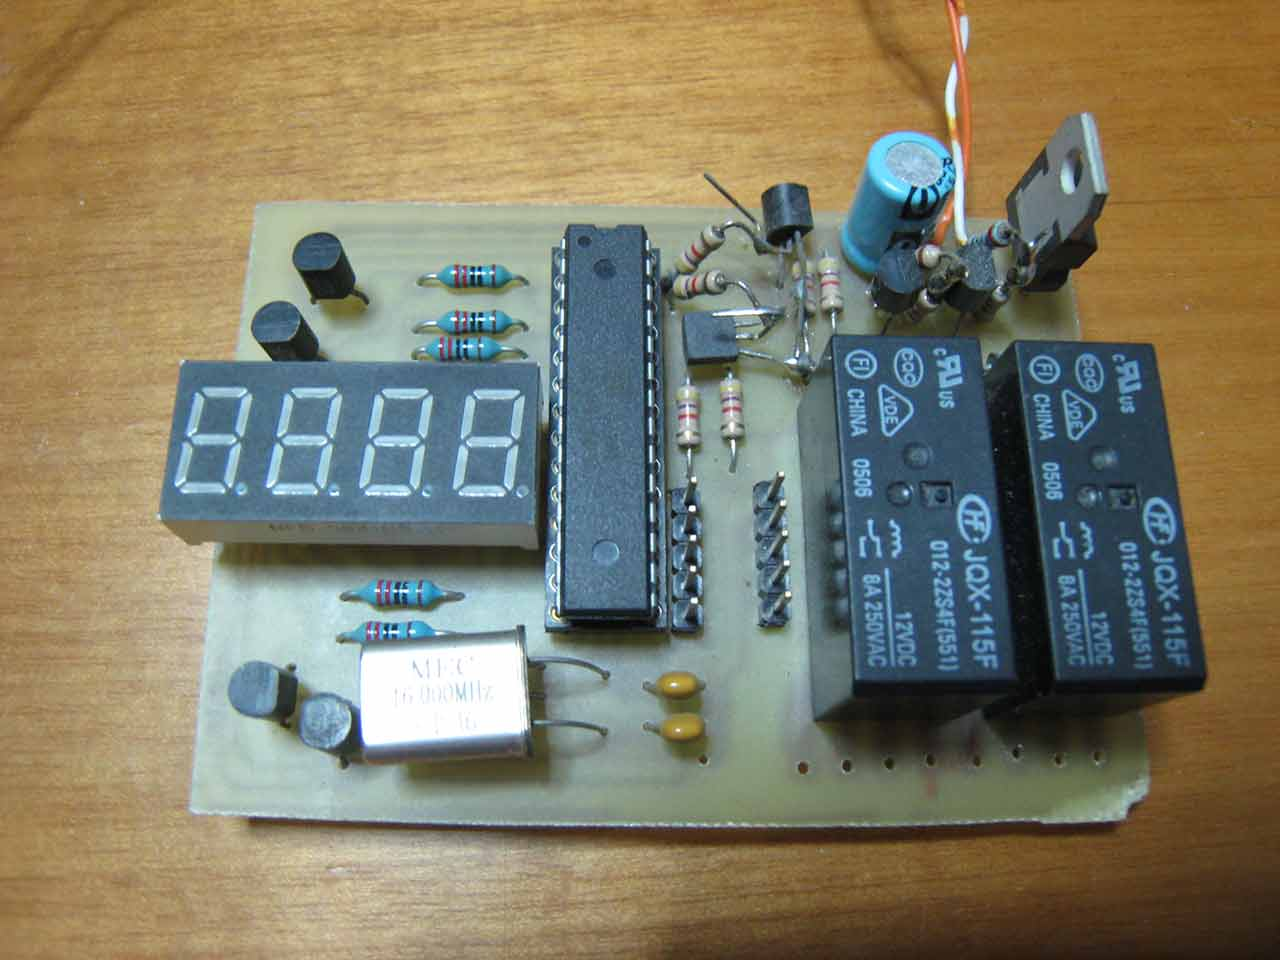 Delay counter with relay